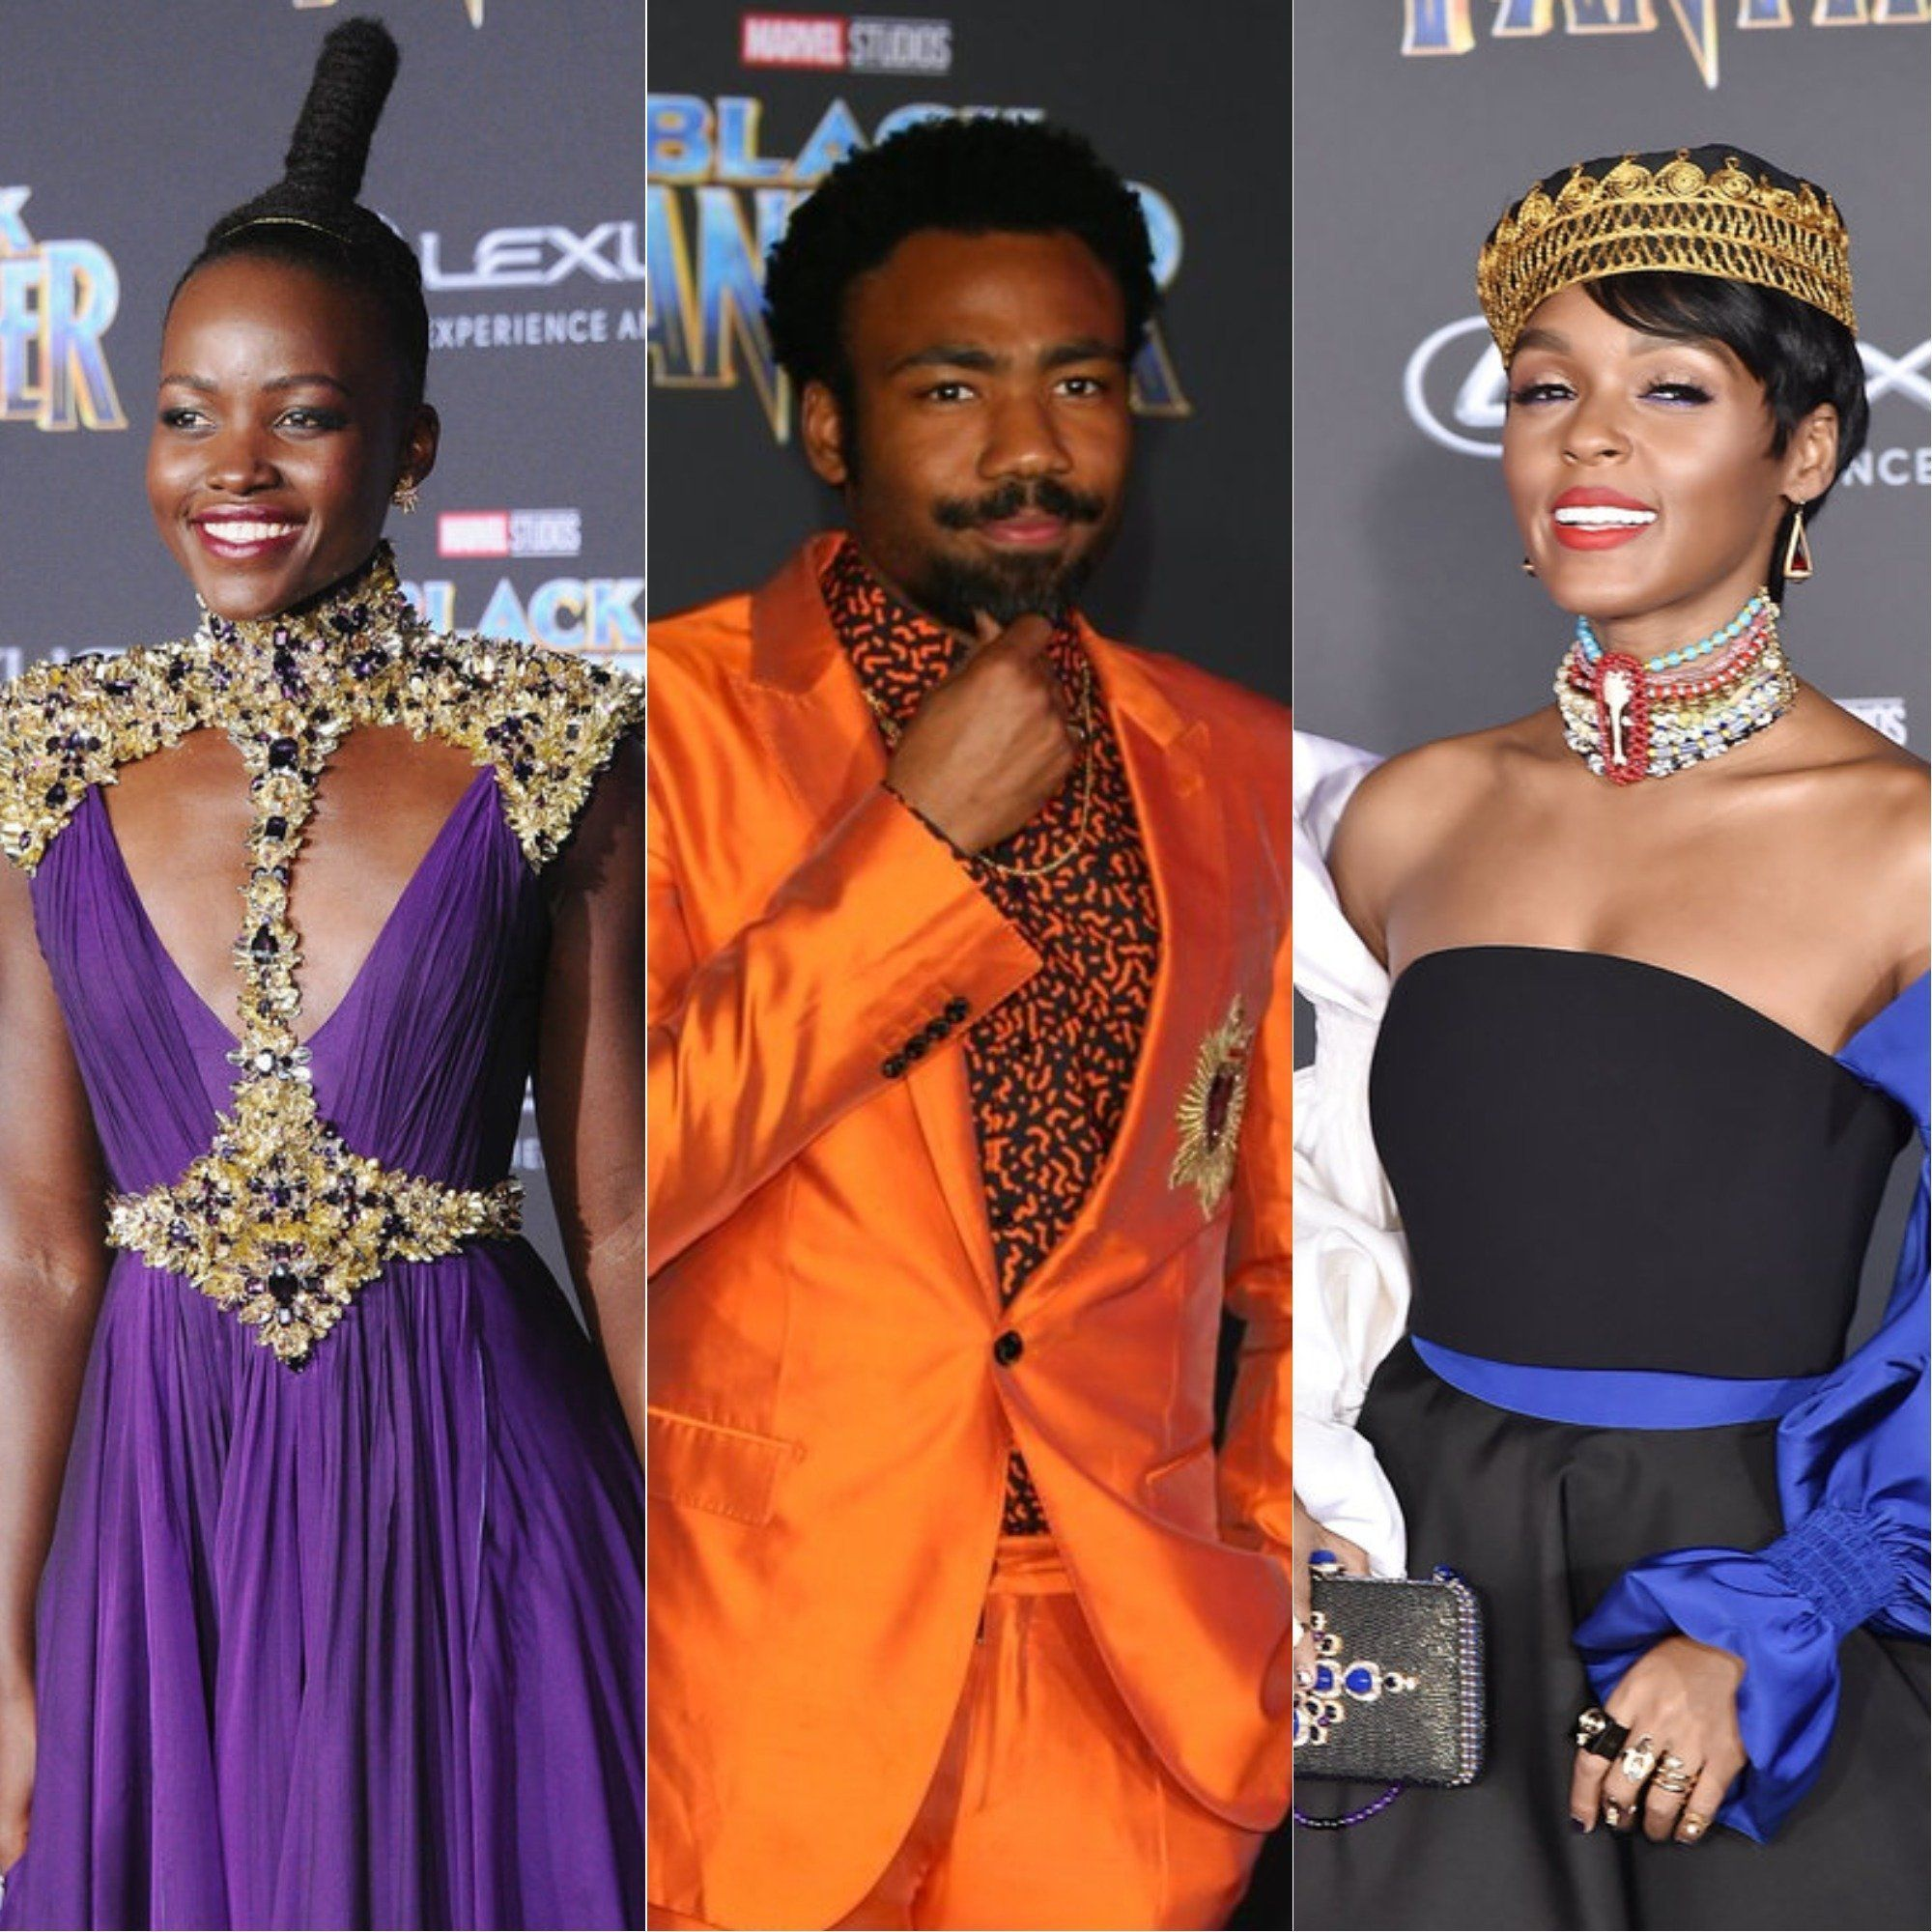 Lupita Nyong'o Led The Celebration Of Bold Colour At The Black Panther